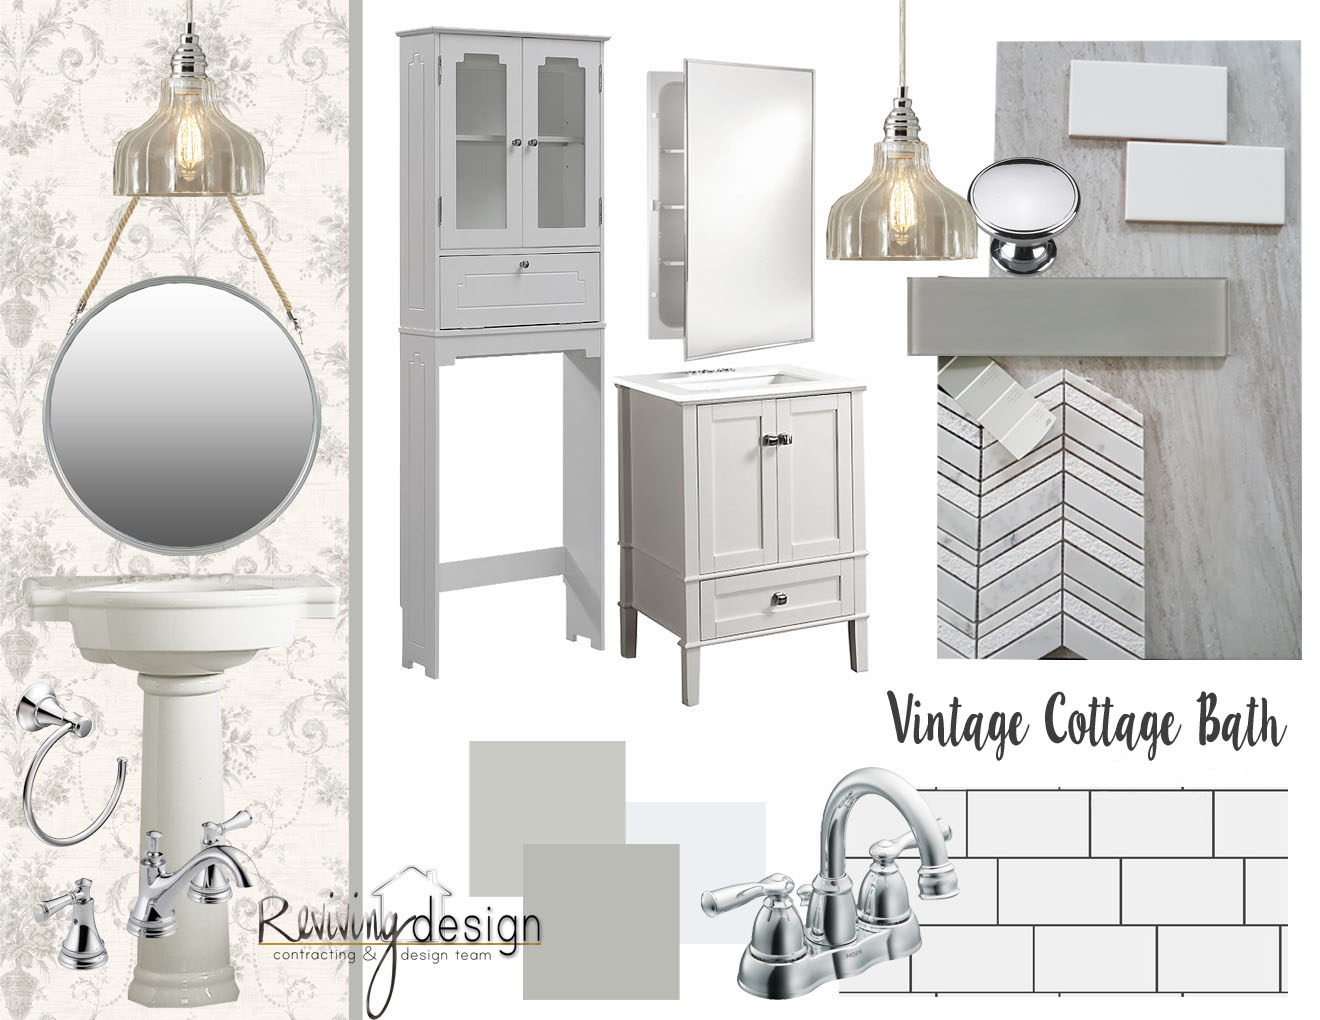 Vintage Cottage Bath Concept